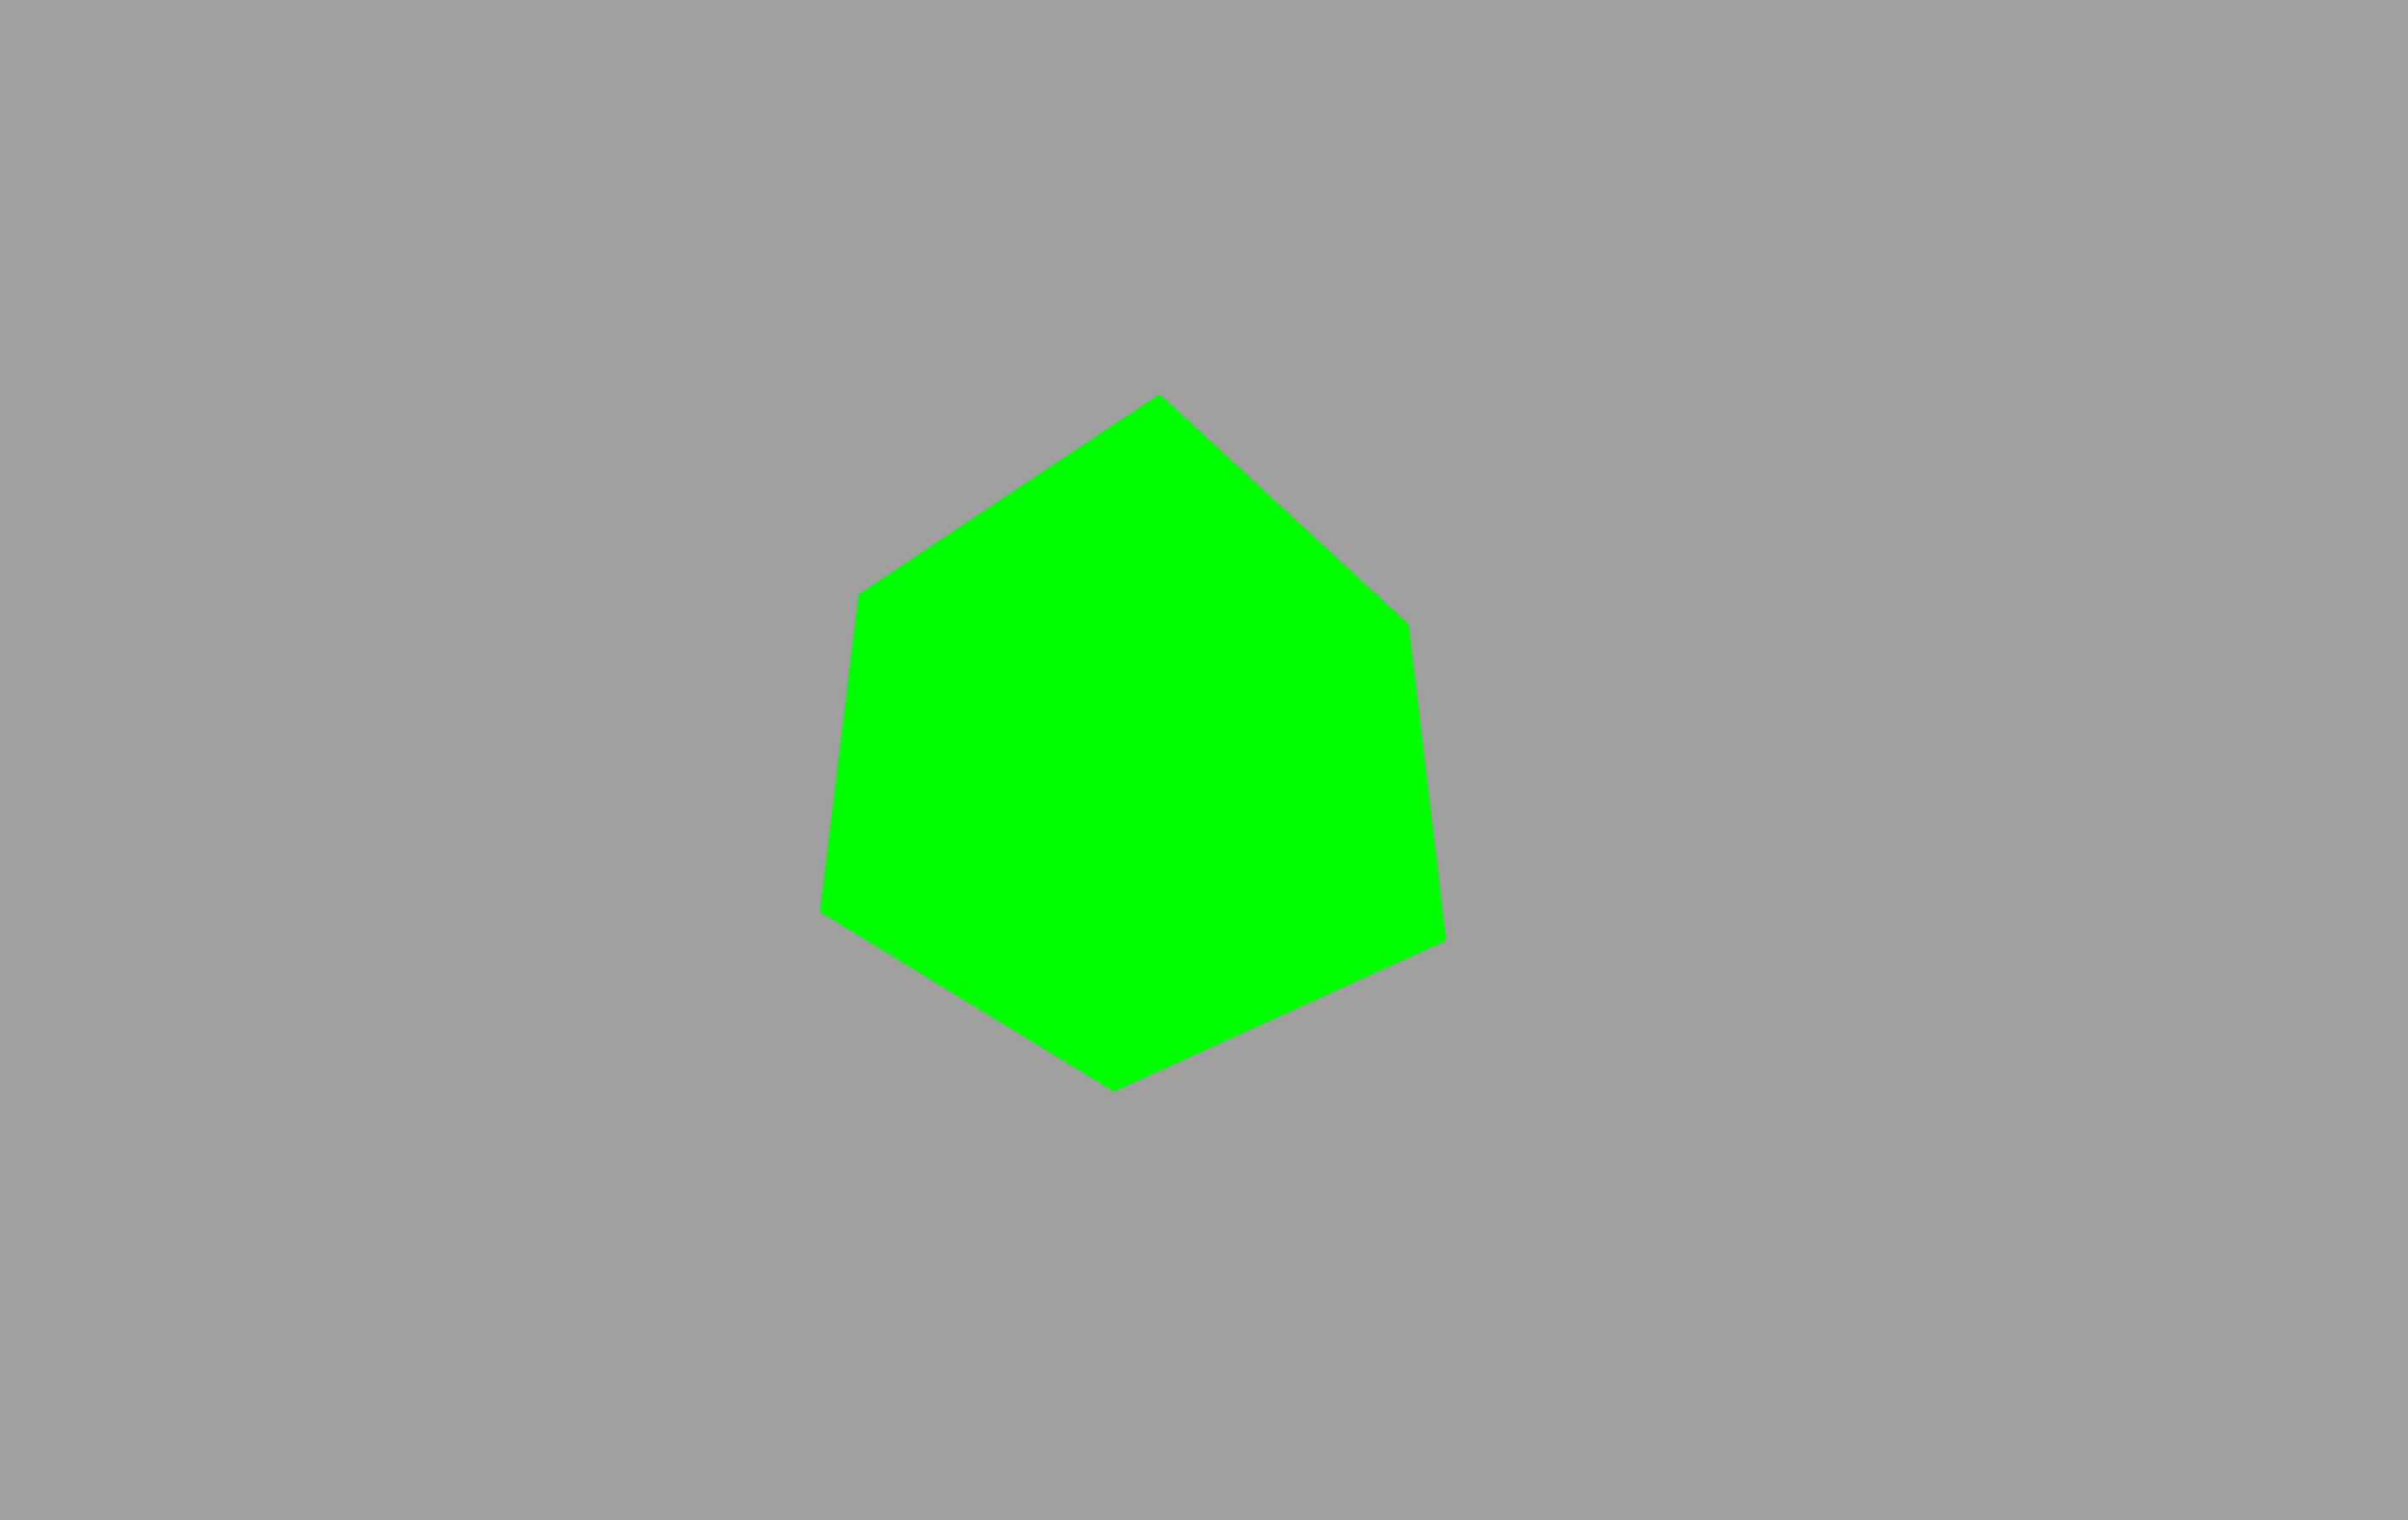 3D Rendering with Three.js